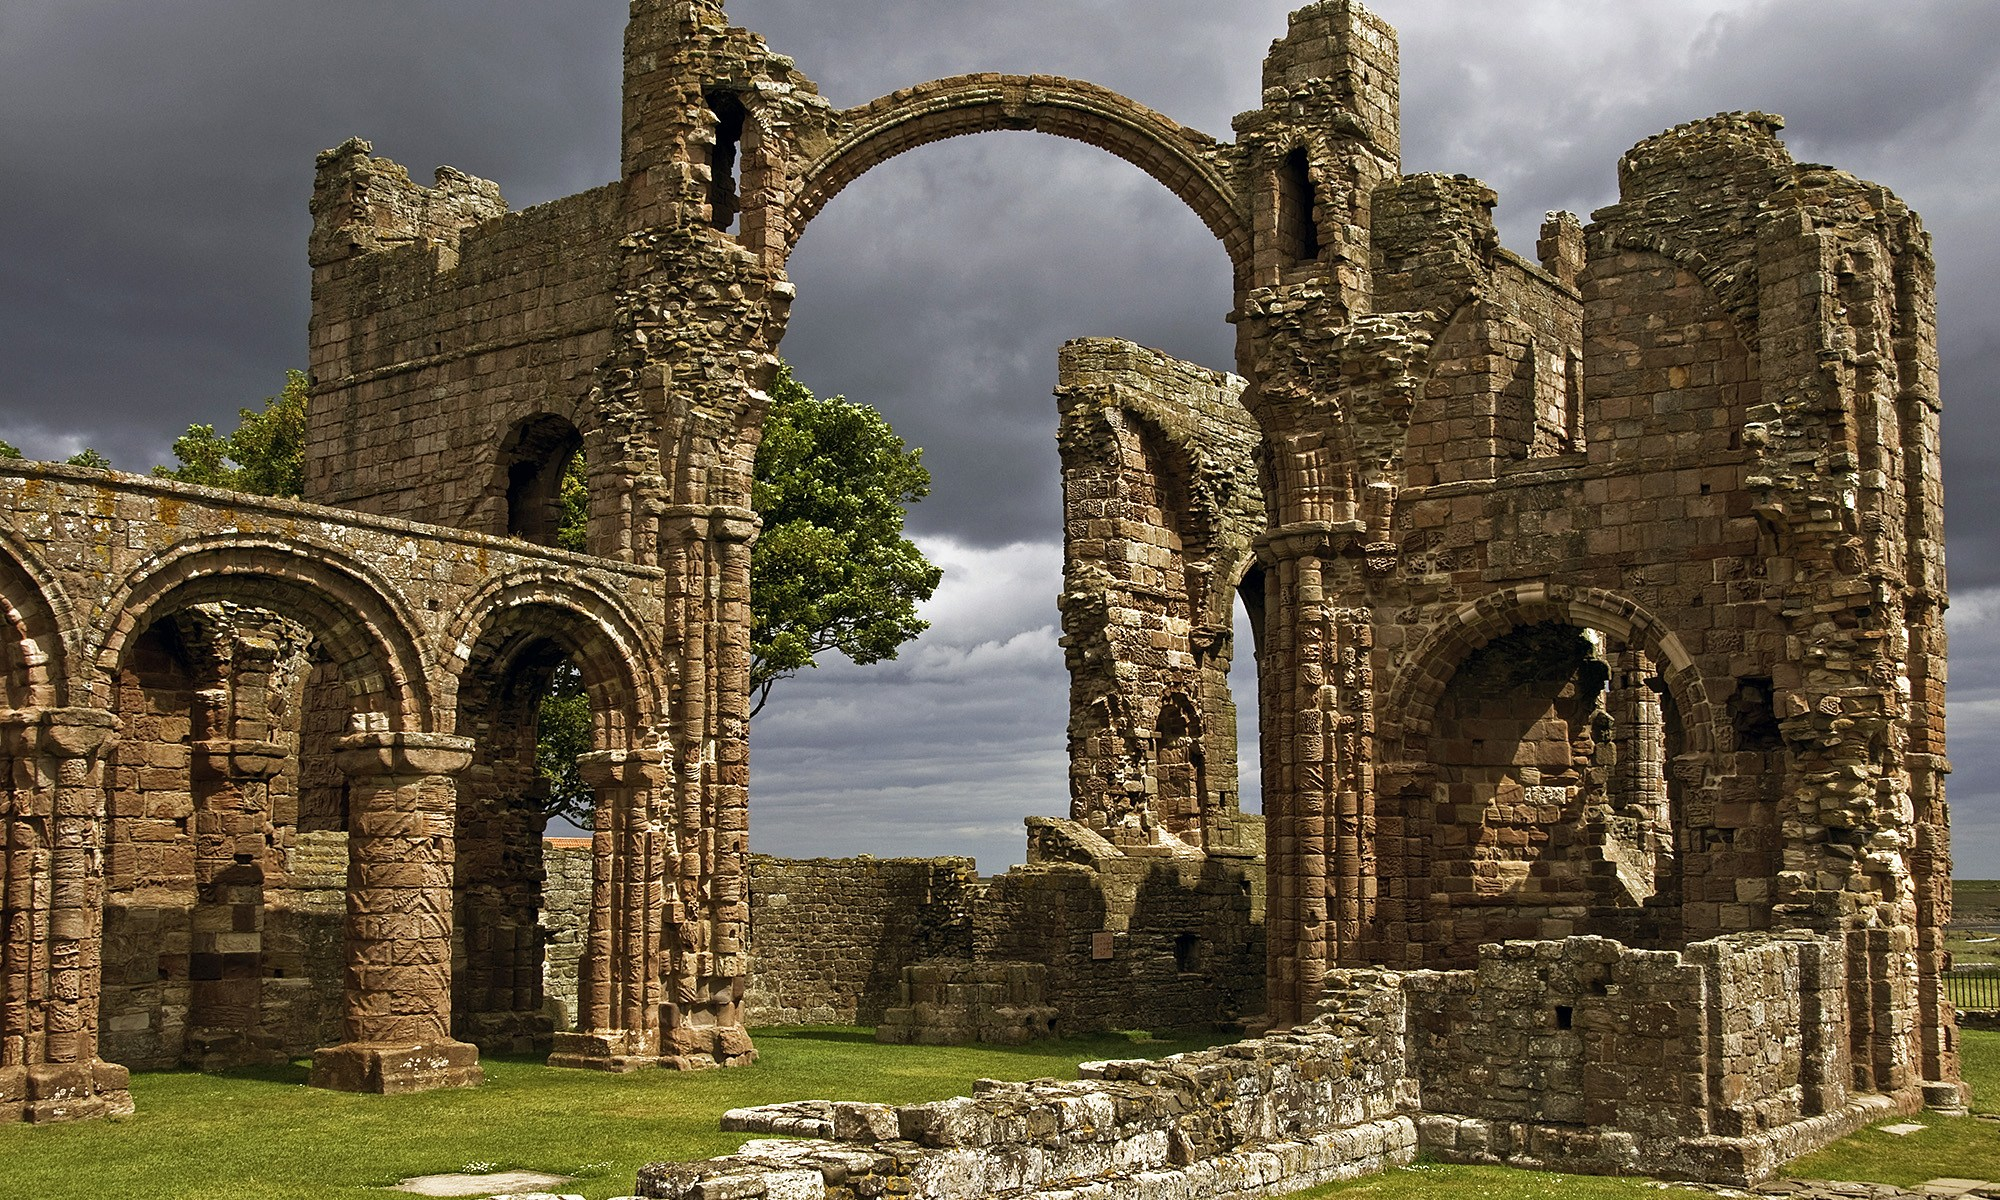 Archway at Lindisfarne Priory